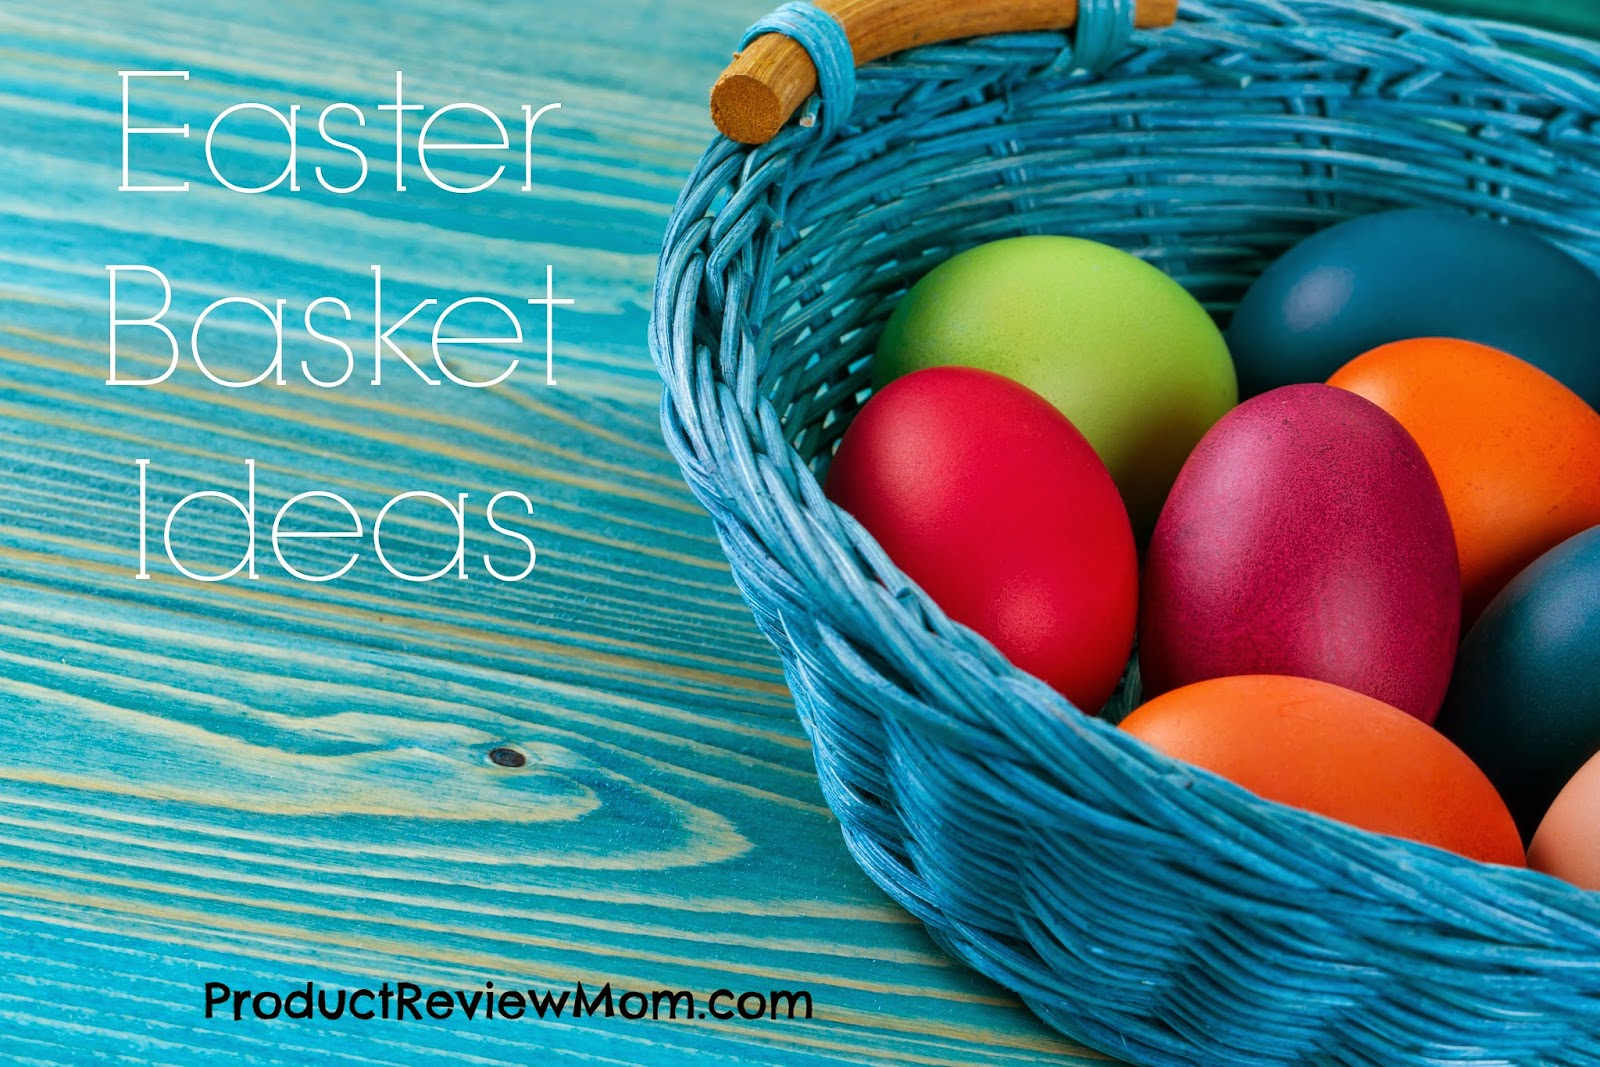 Easter Basket Ideas  via www.productreviewmom.com